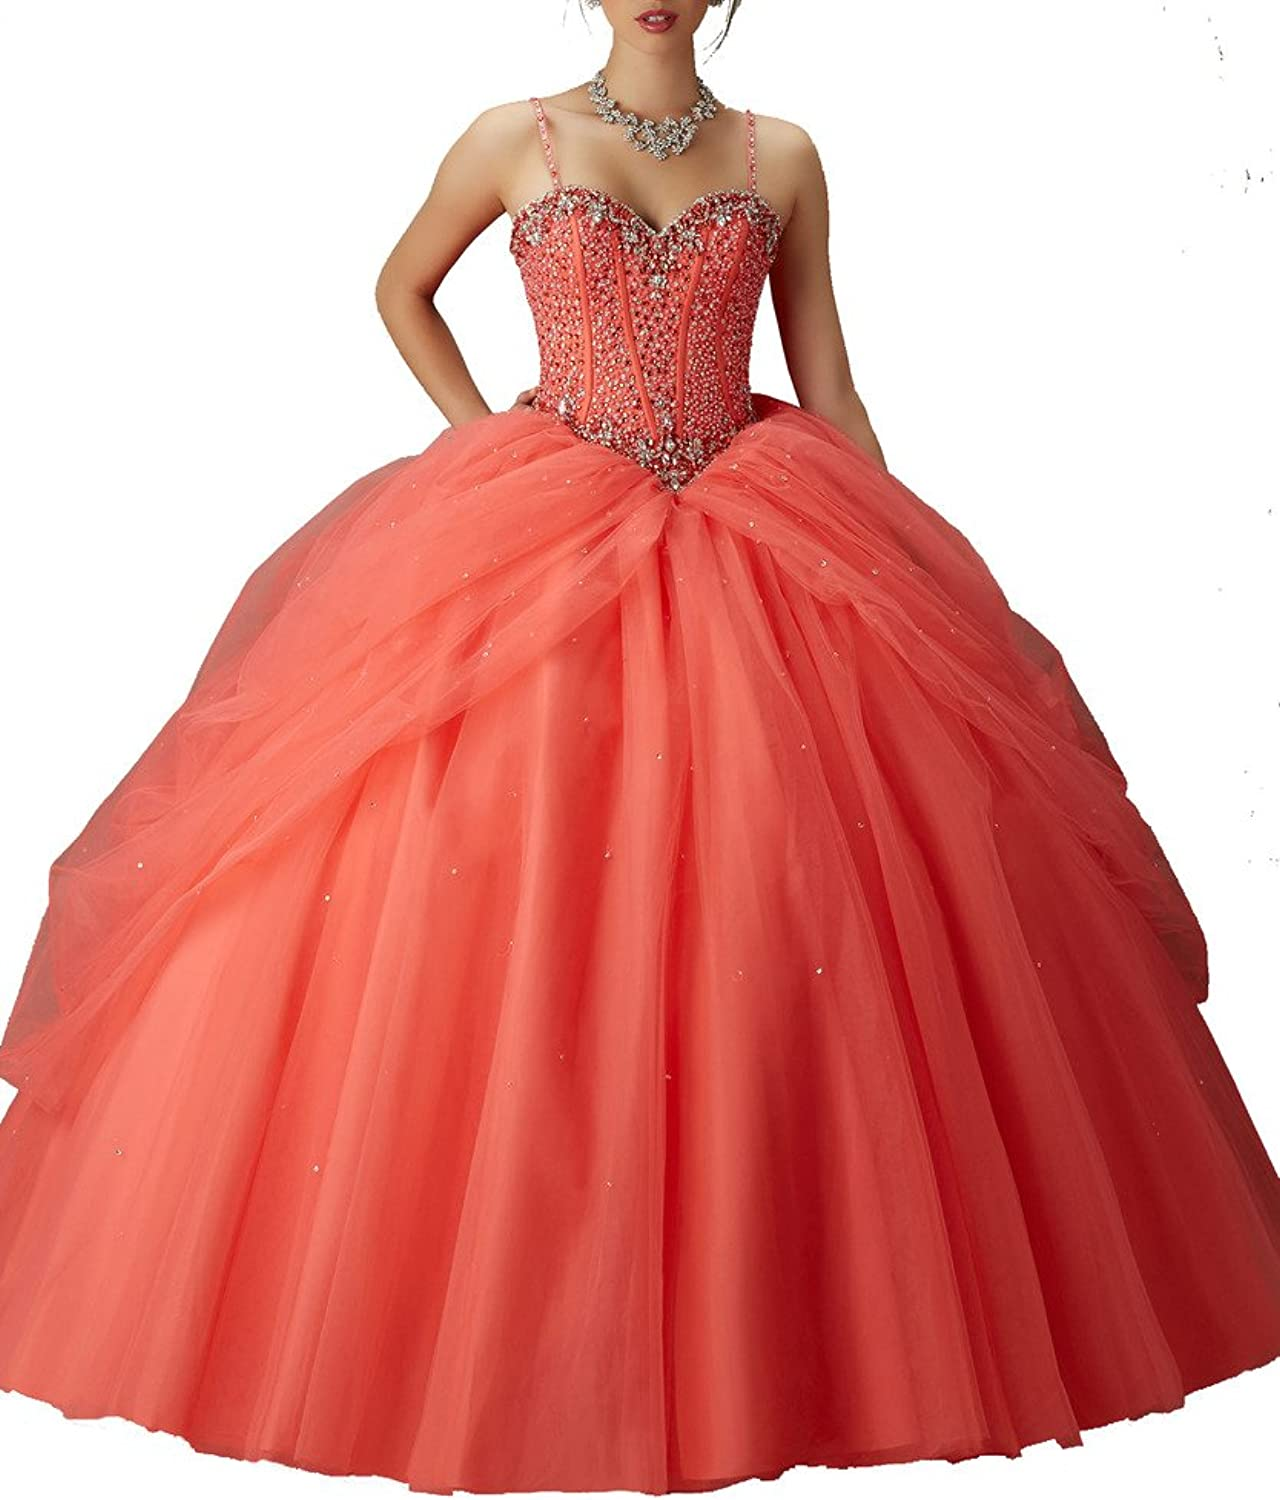 HSDJ Women's Sweet 16 Beading Ball Gowns Spaghetti Straps Quinceanera Dresses